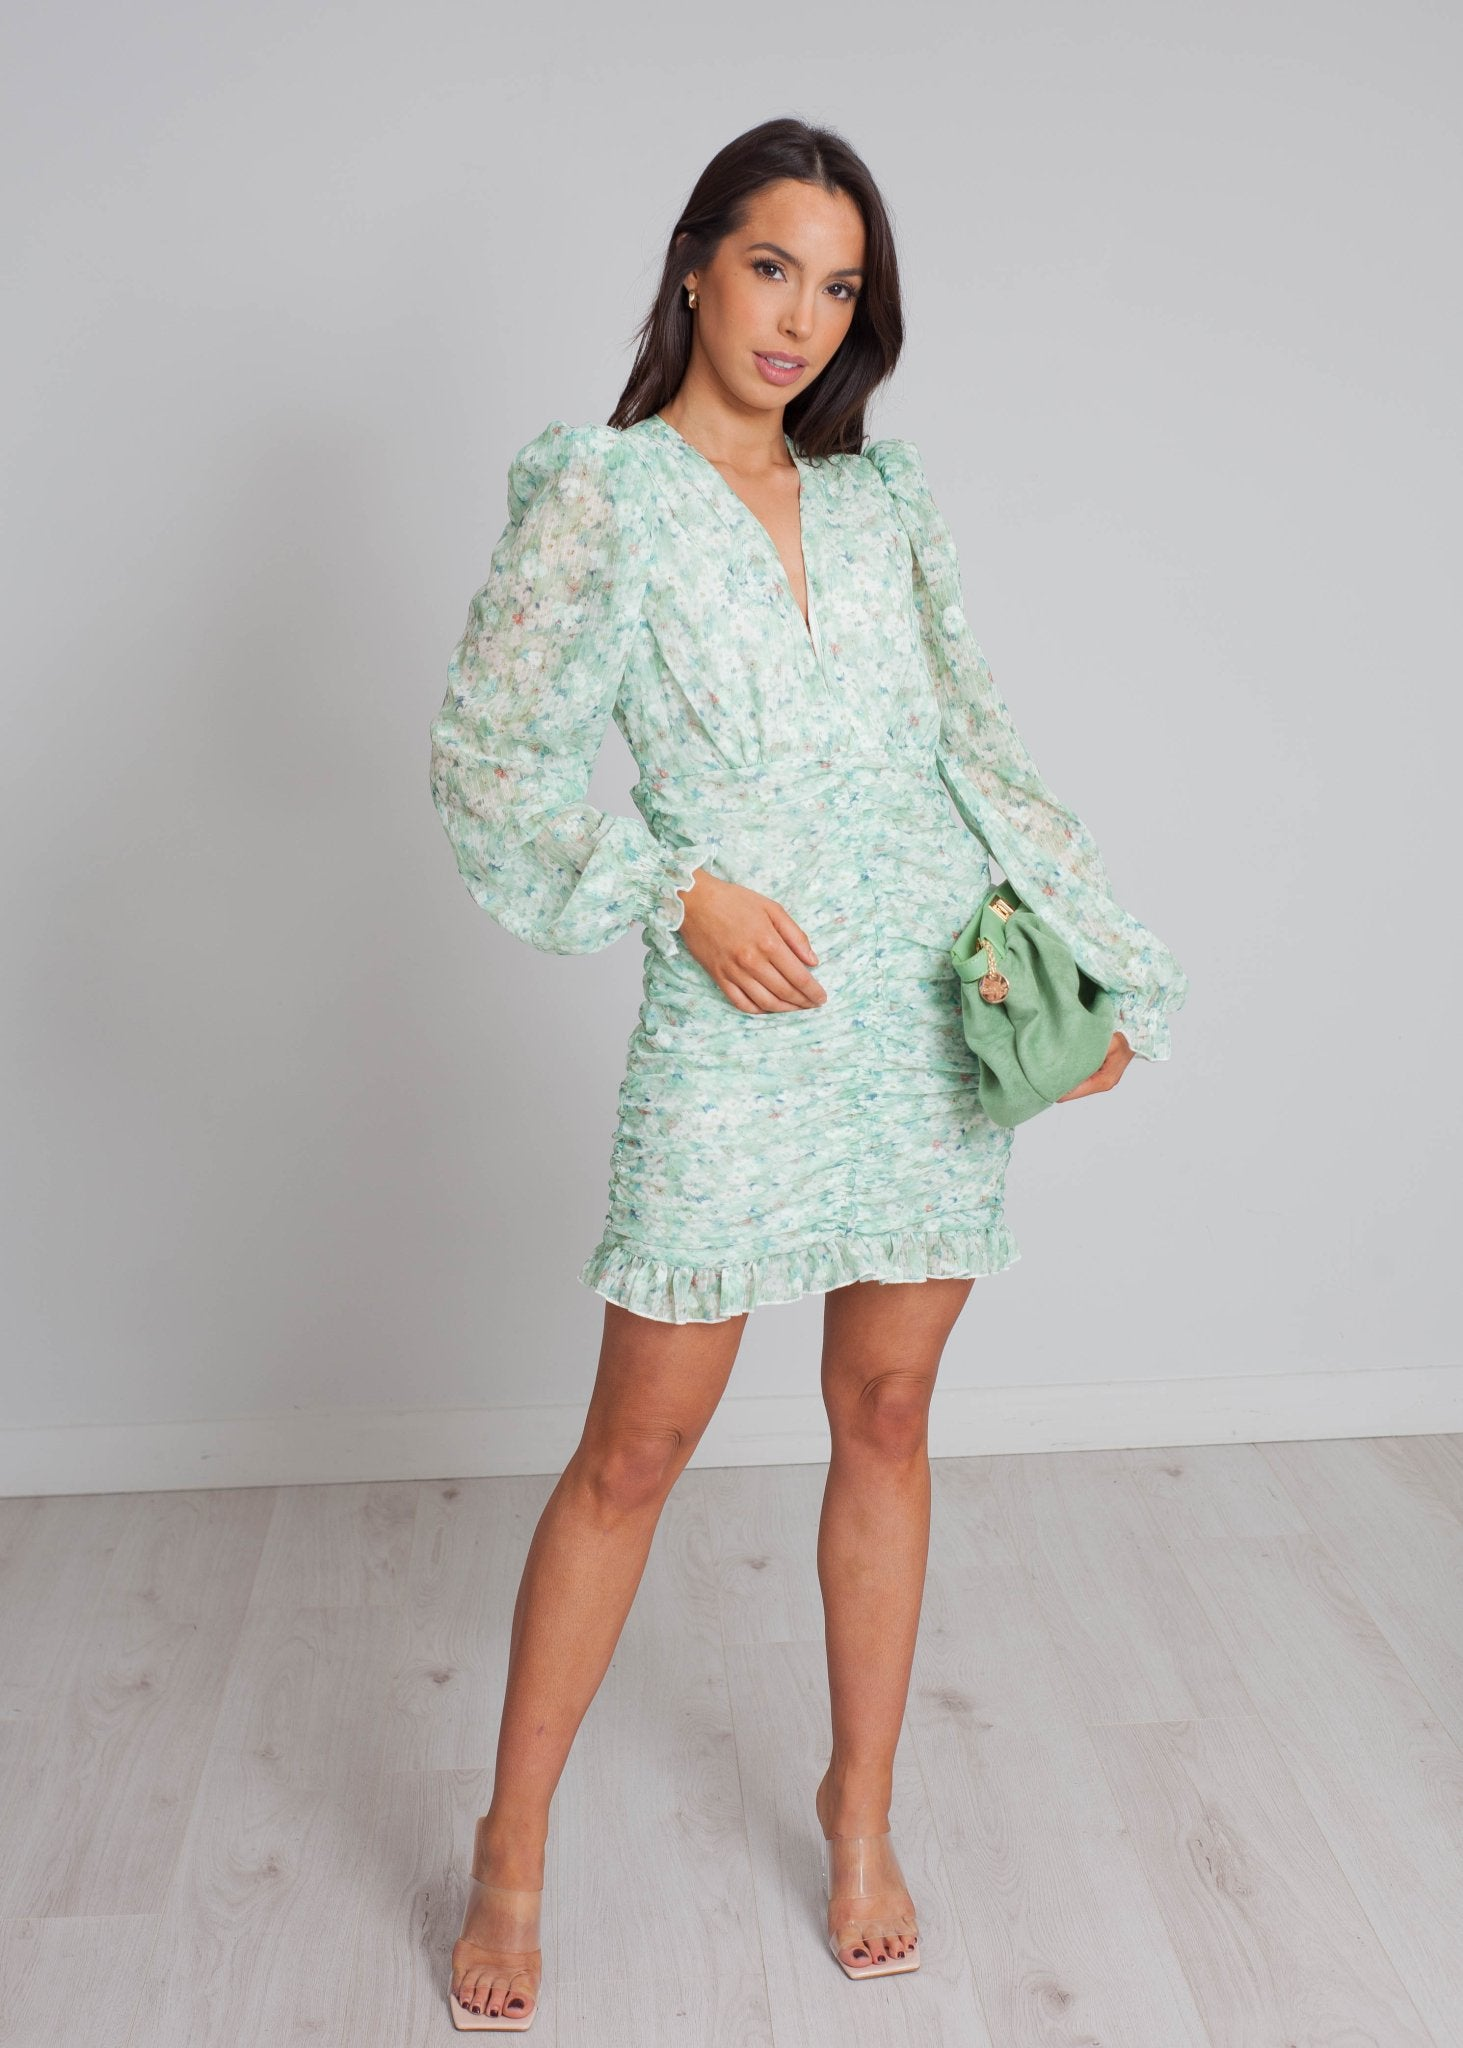 Elsa Ruched Floral Dress In Green - The Walk in Wardrobe